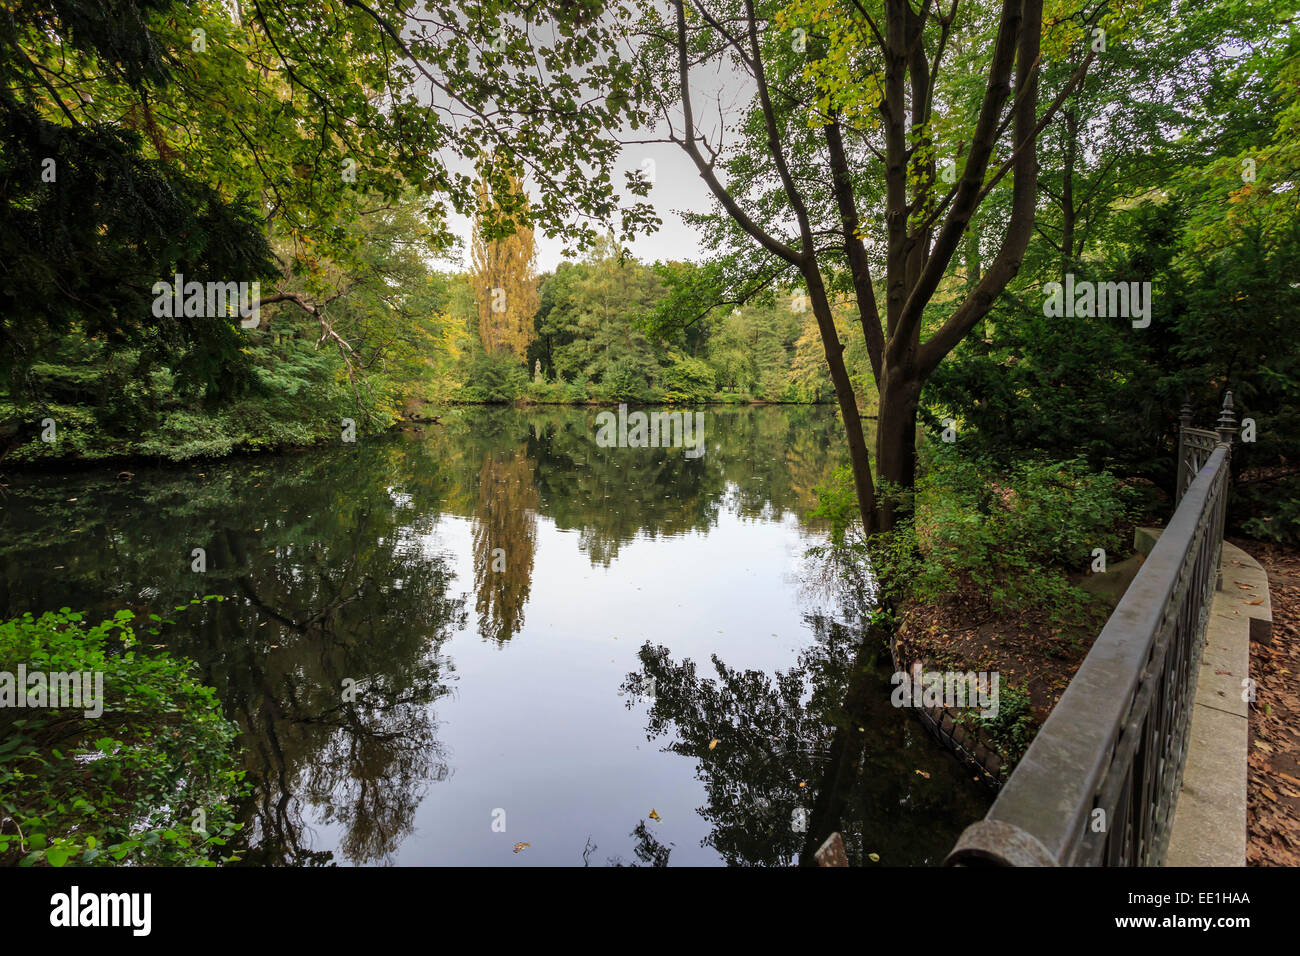 Autumn evening in Tiergarten Park, Lake with reflections, Berlin, Germany, Europe - Stock Image